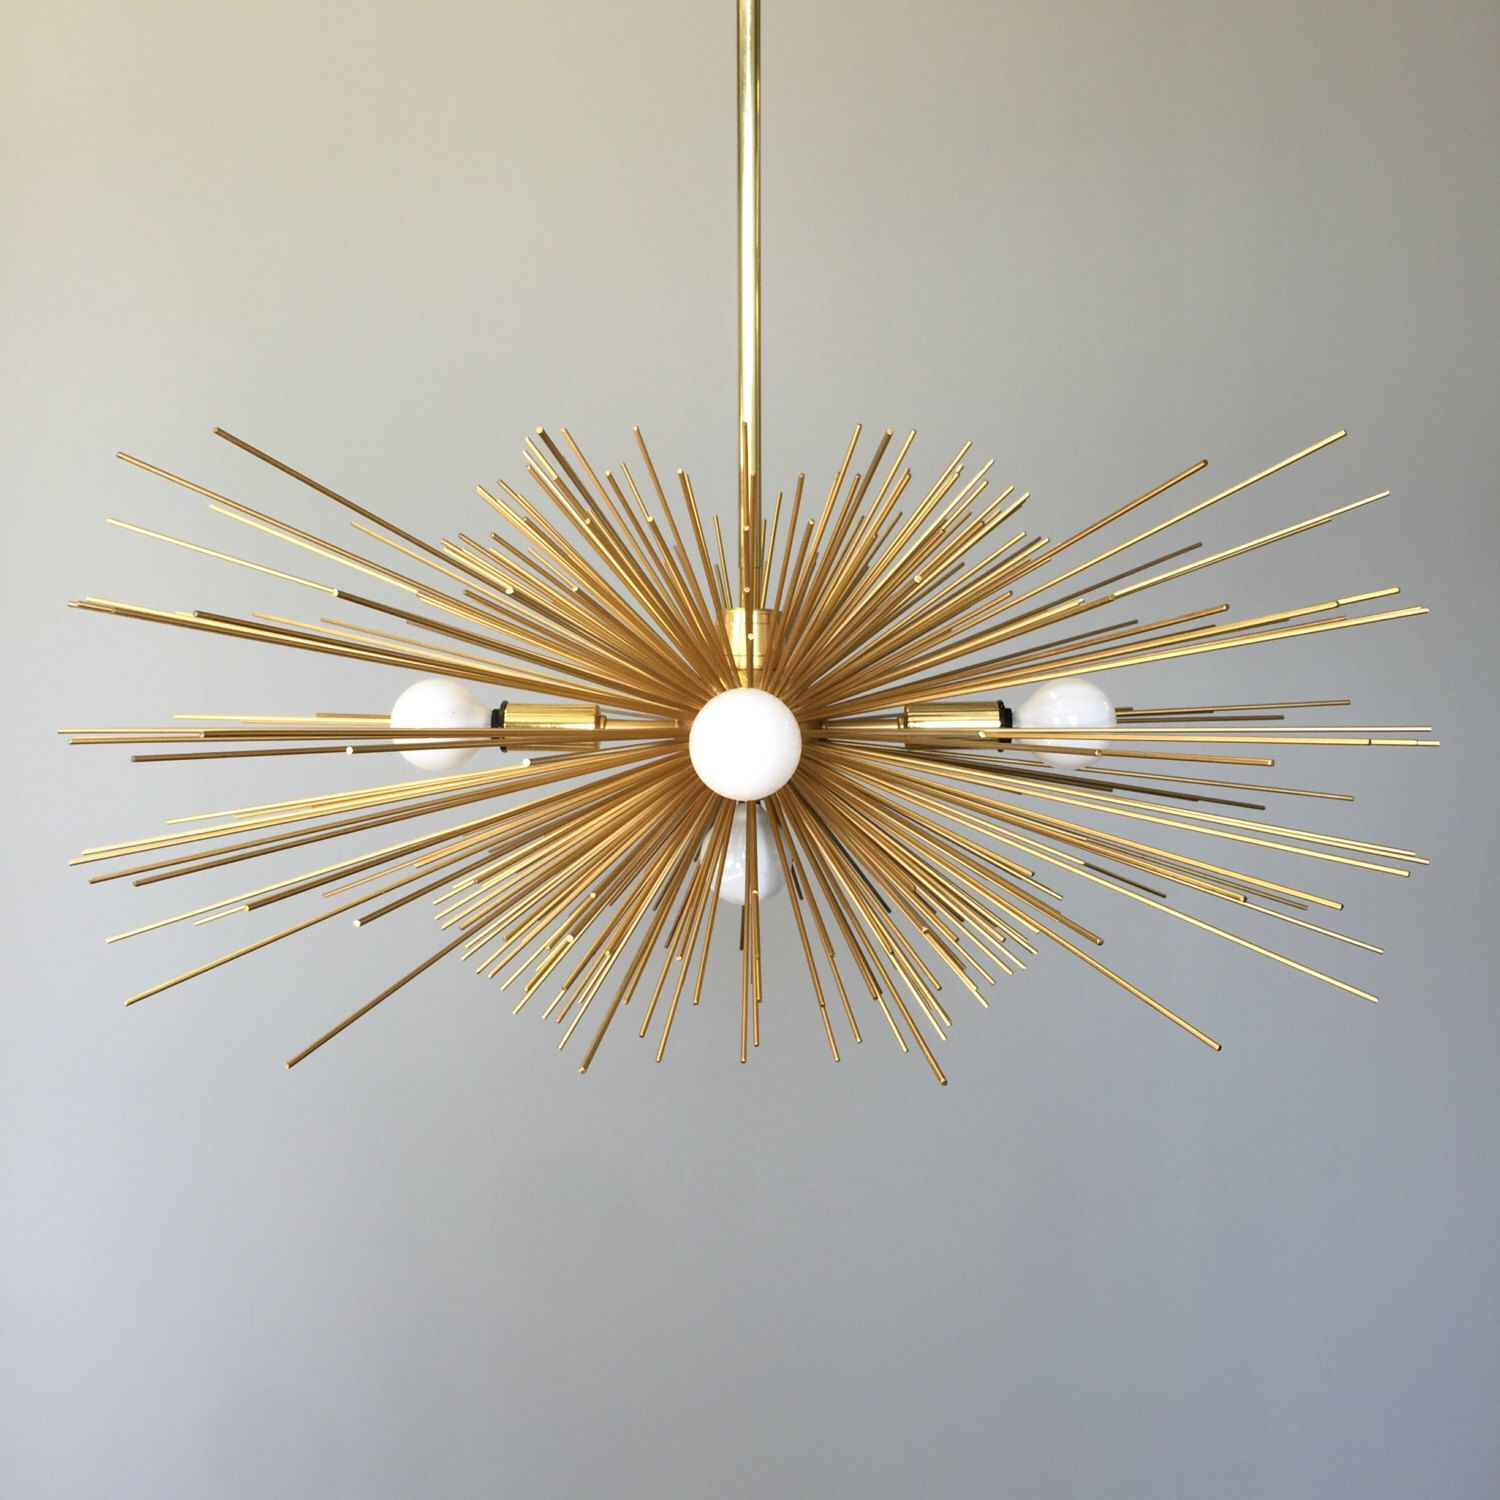 5 Bulb Gold Urchin Chandelier Lighting by DuttonBrown on Etsy